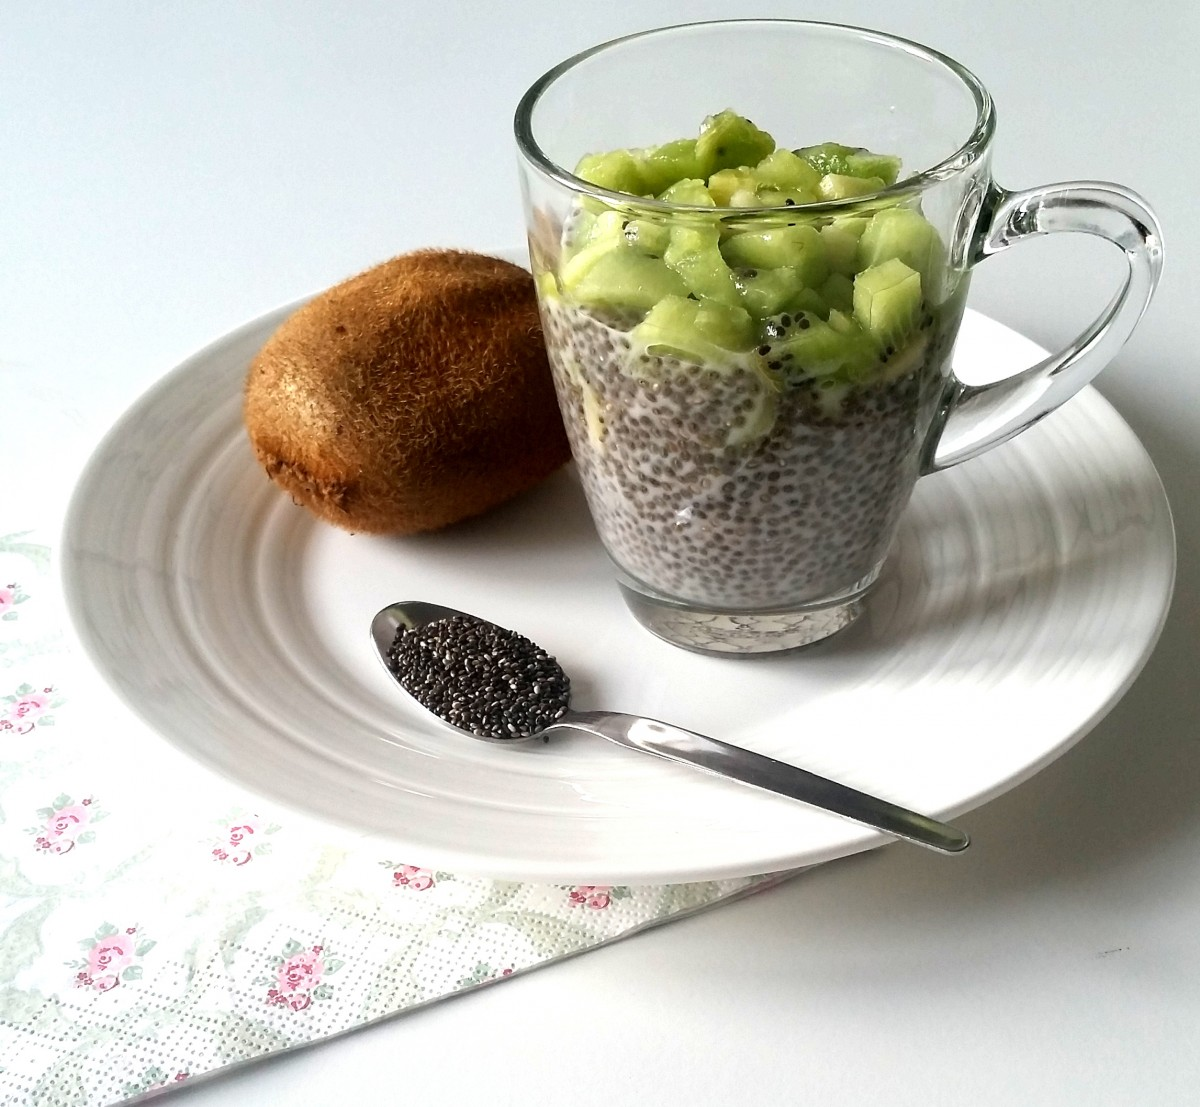 BUDINO CON SEMI DI CHIA E KIWI * PUDDING WITH CHIA SEEDS